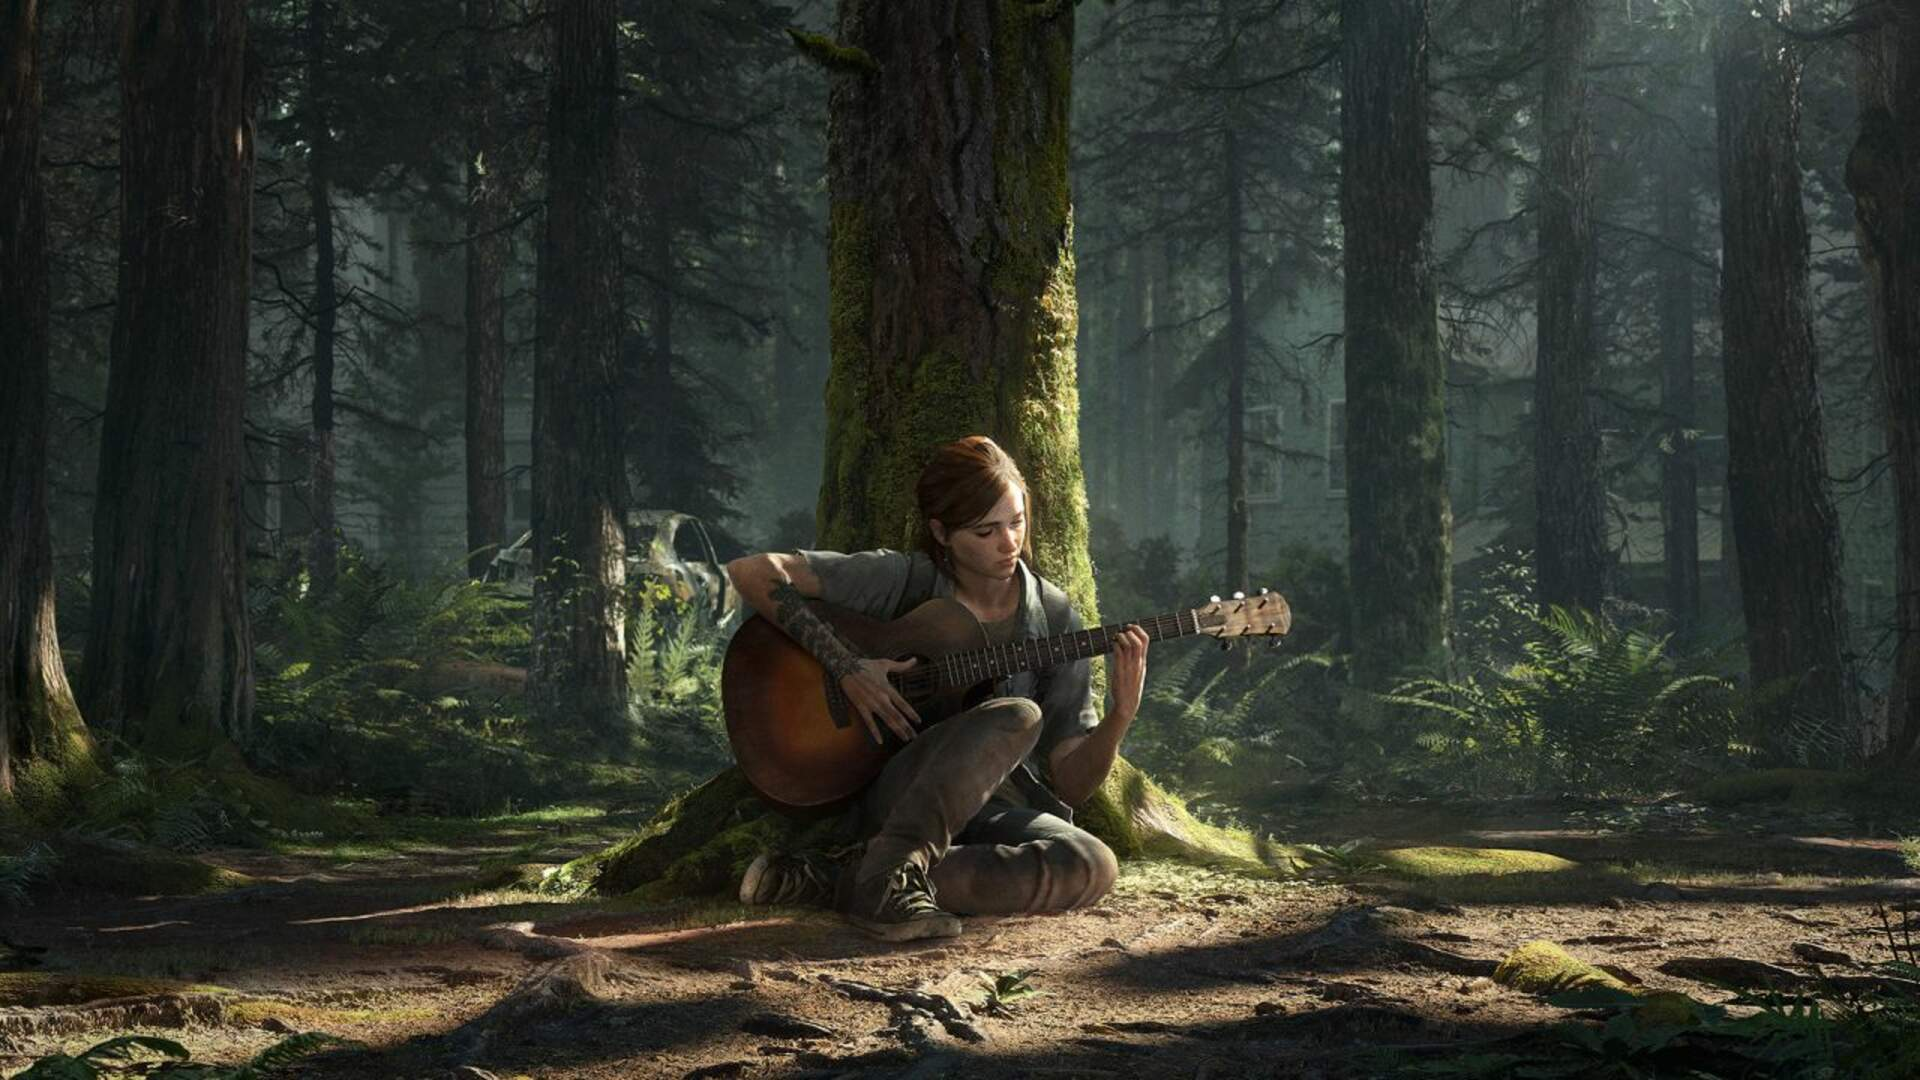 The Last of Us Part 2 Playable Characters: Who Do You Play As?